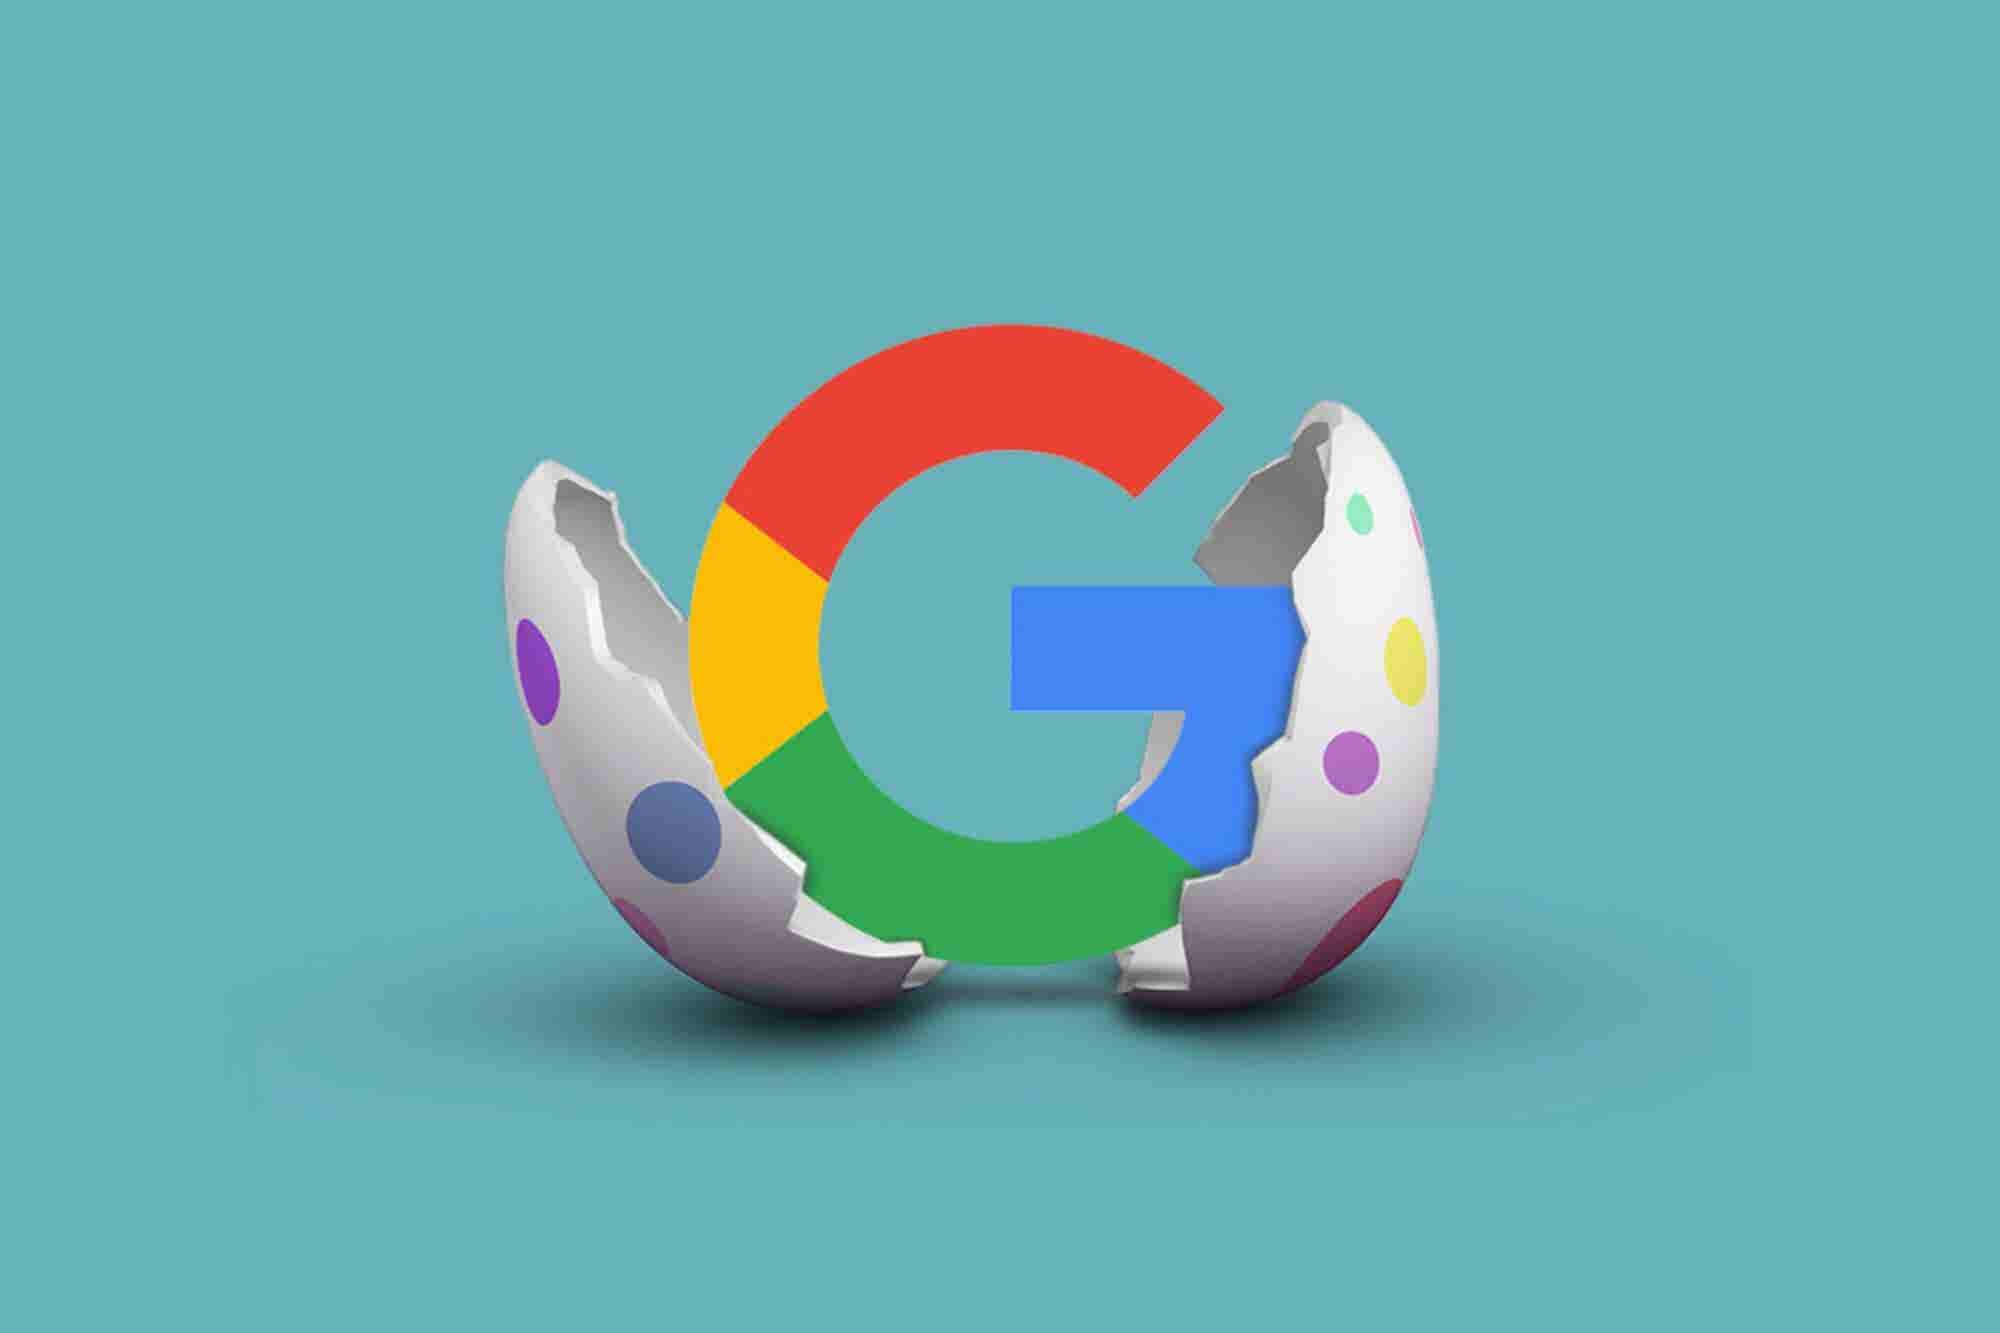 Google Search Turns 20 Today. Check Out the New Easter Eggs and Homepa...